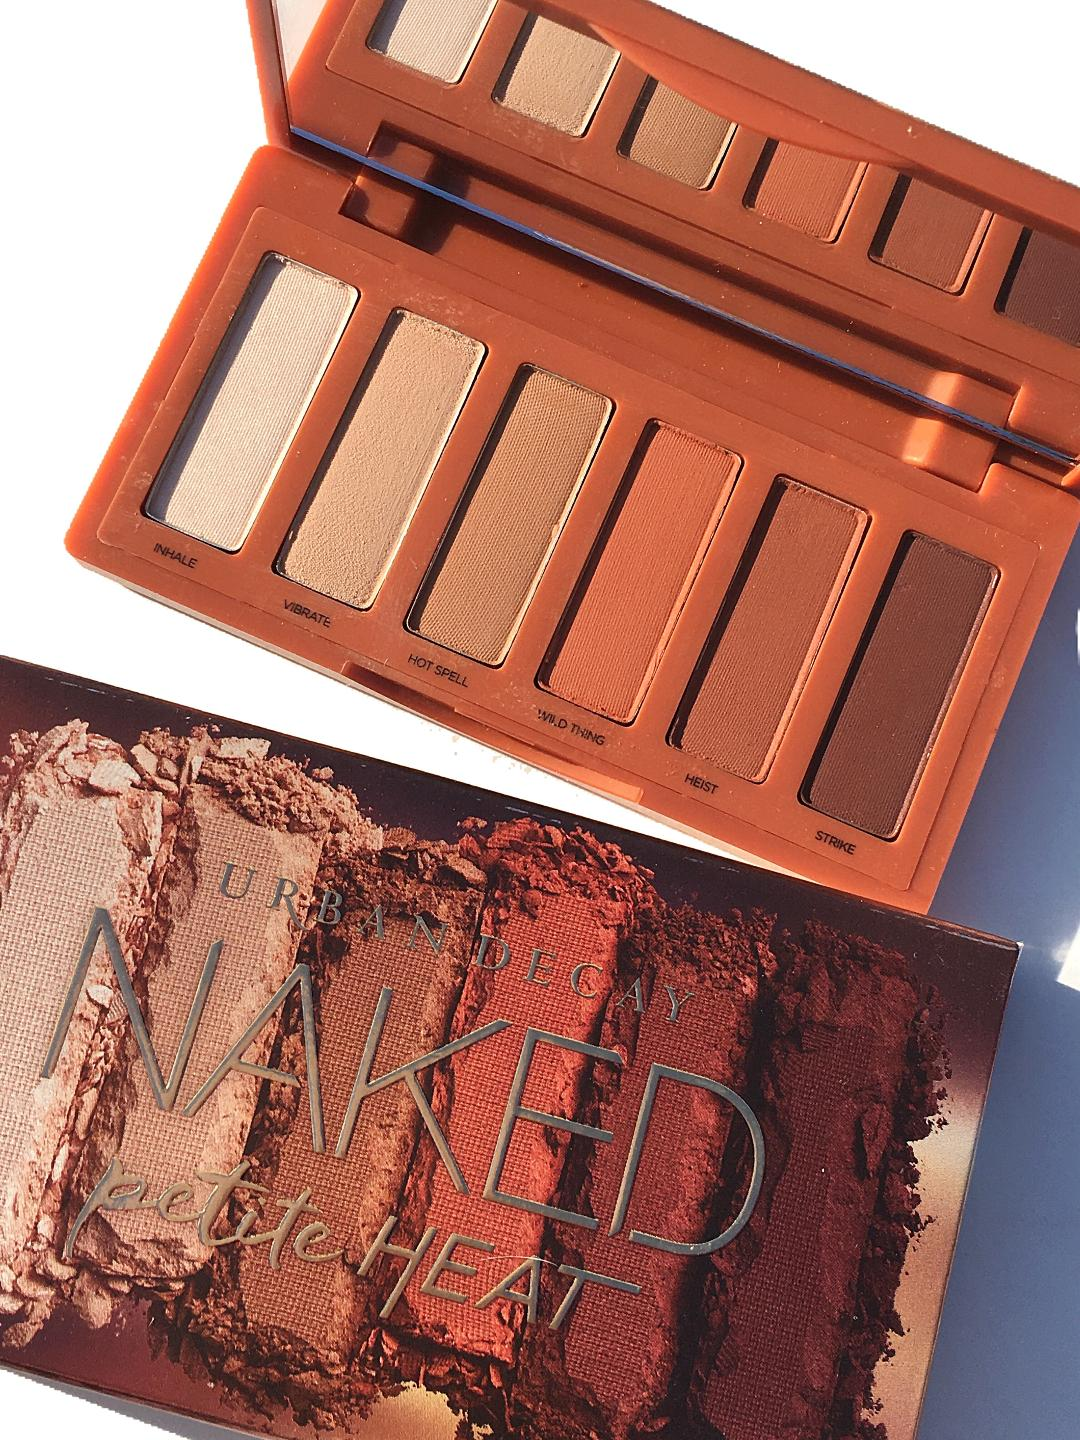 Urban Decay Naked Petite Palette Review & Swatches